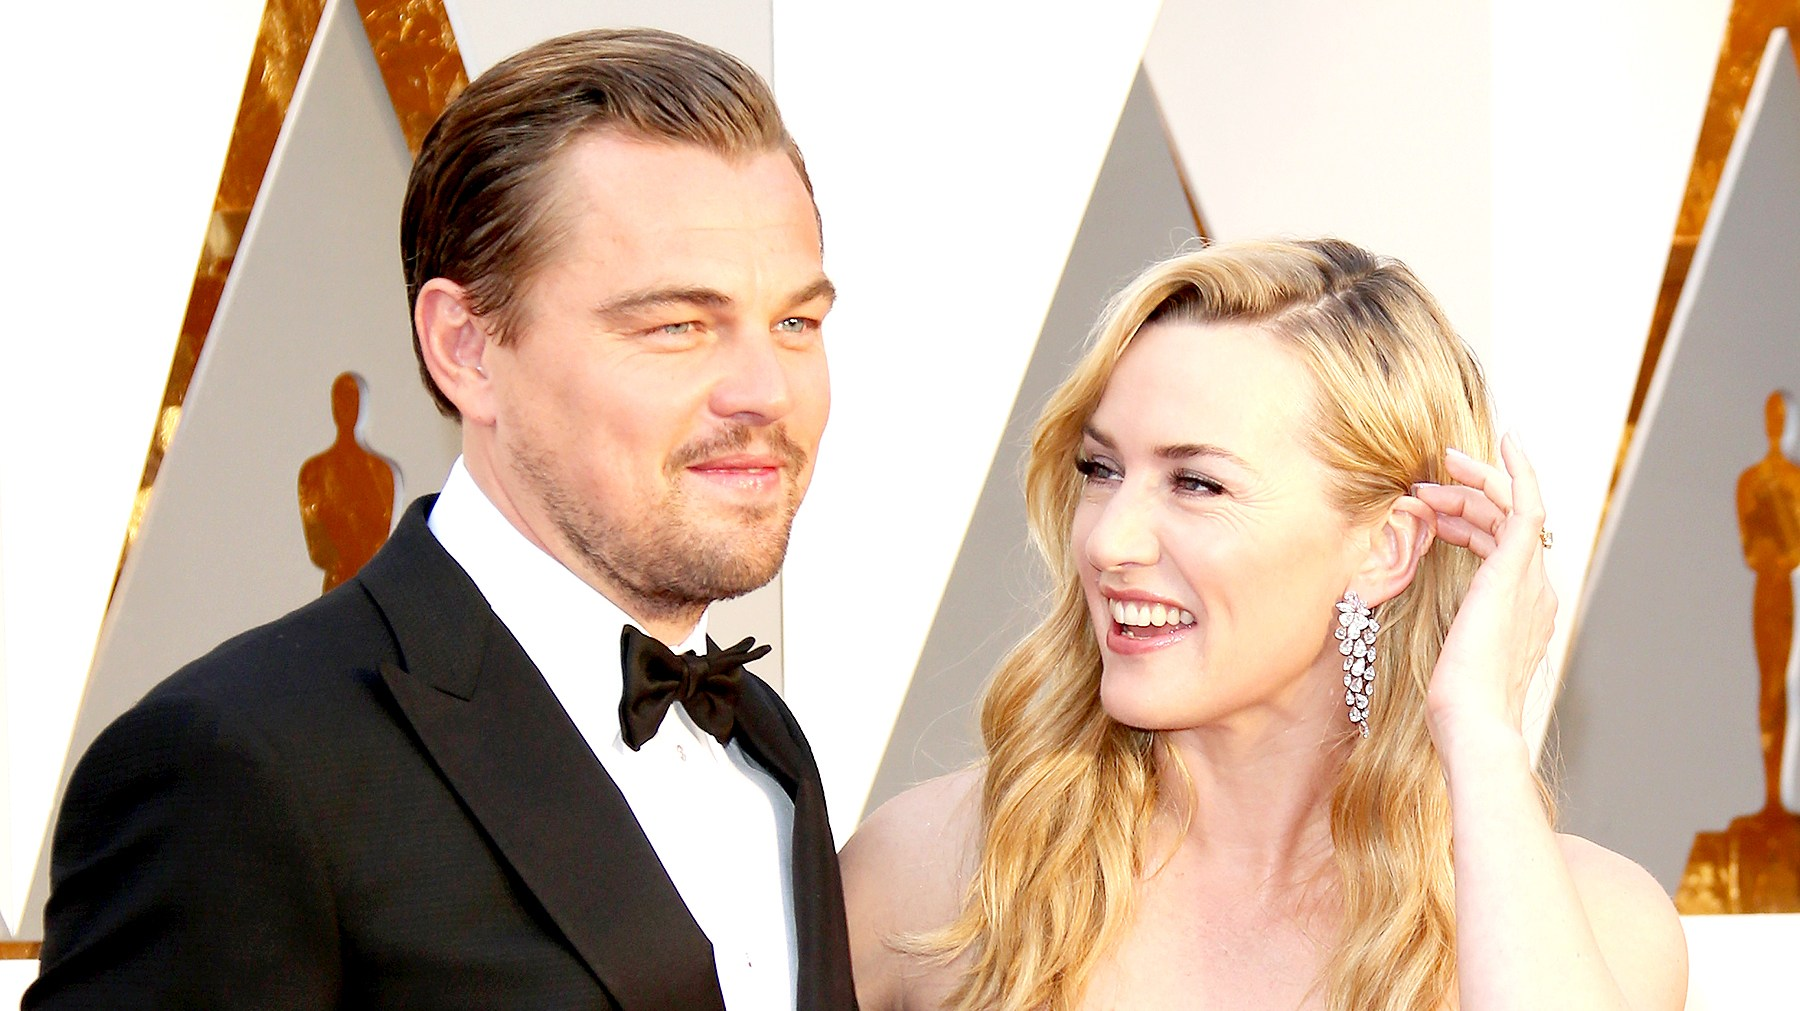 Leonardo DiCaprio and Kate Winslet attend the 88th Annual Academy Awards at Hollywood & Highland Center on February 28, 2016 in Hollywood, California.